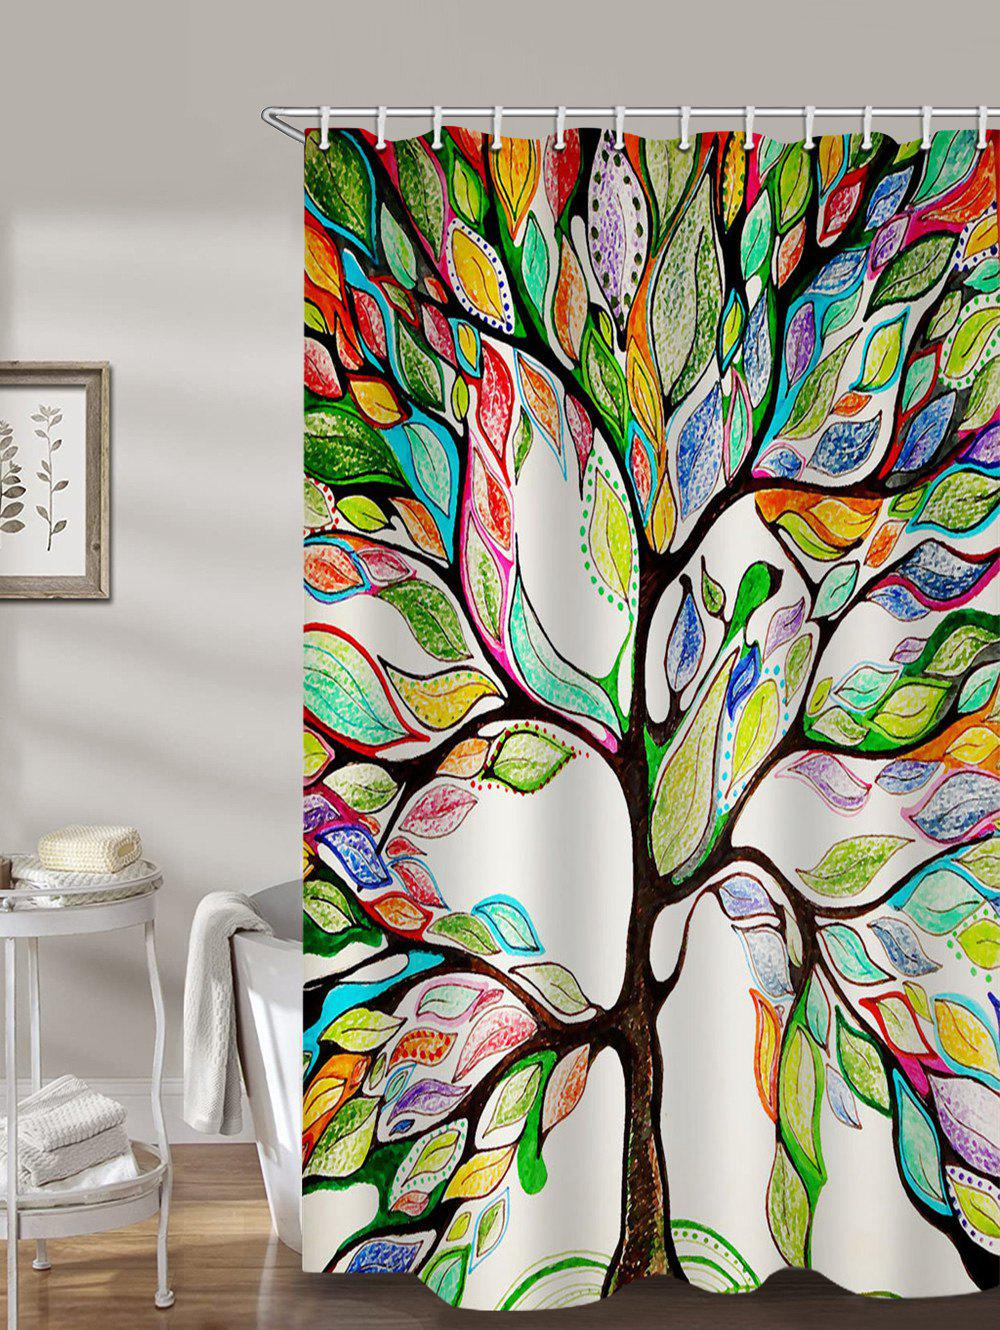 Colorful Life Tree Print Waterproof Bathroom Shower Curtain - multicolor W71 X L71 INCH